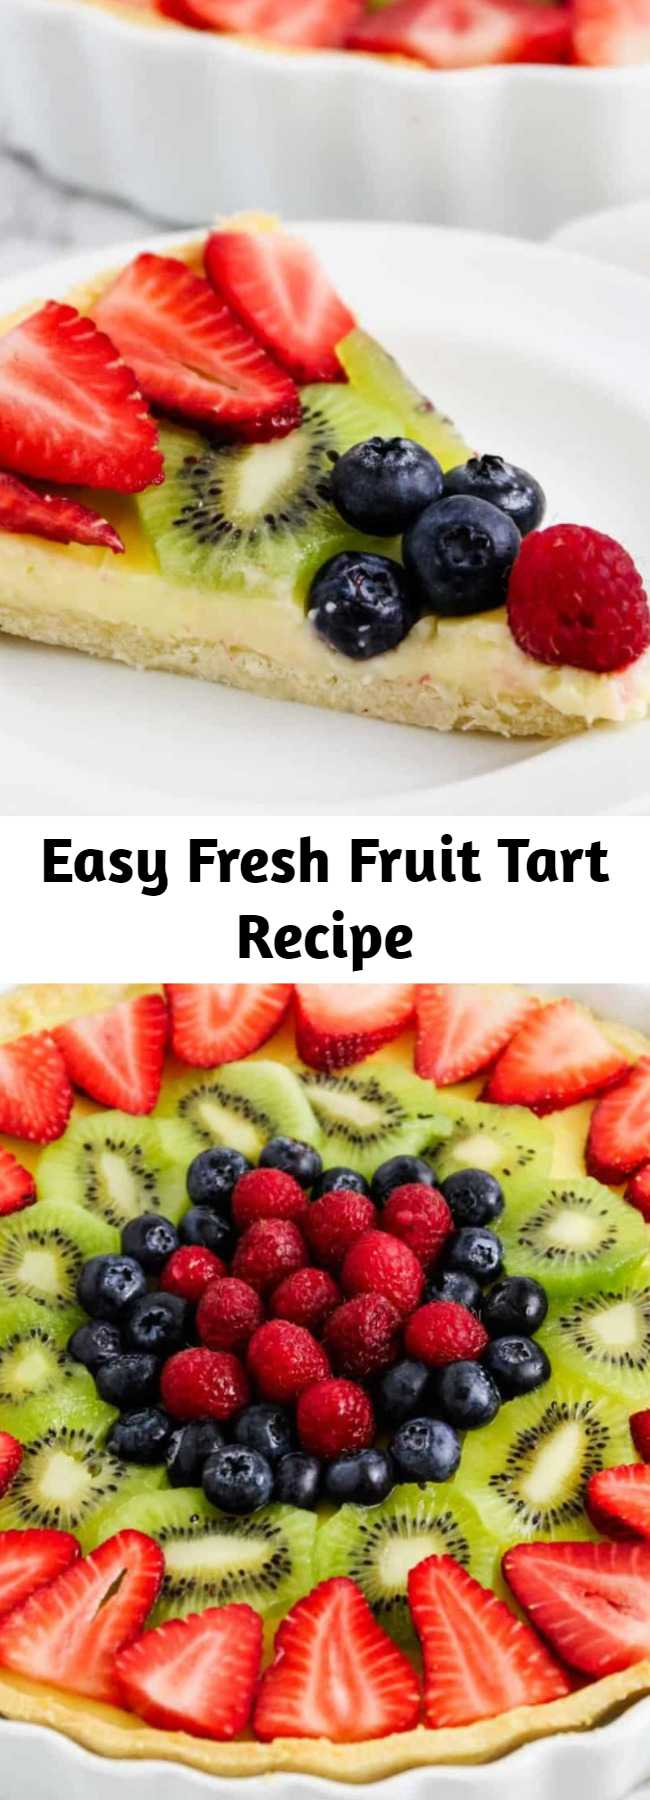 Easy Fresh Fruit Tart Recipe - Each bite of this fresh fruit tart is a mix of crumbly sweet crust, smooth and decadent custard and juicy fresh berries! This fruit tart recipe is the perfect refreshing treat for warmer weather! #fruittart #easy #recipe #crust #custard #filling #mini #berry #dessert